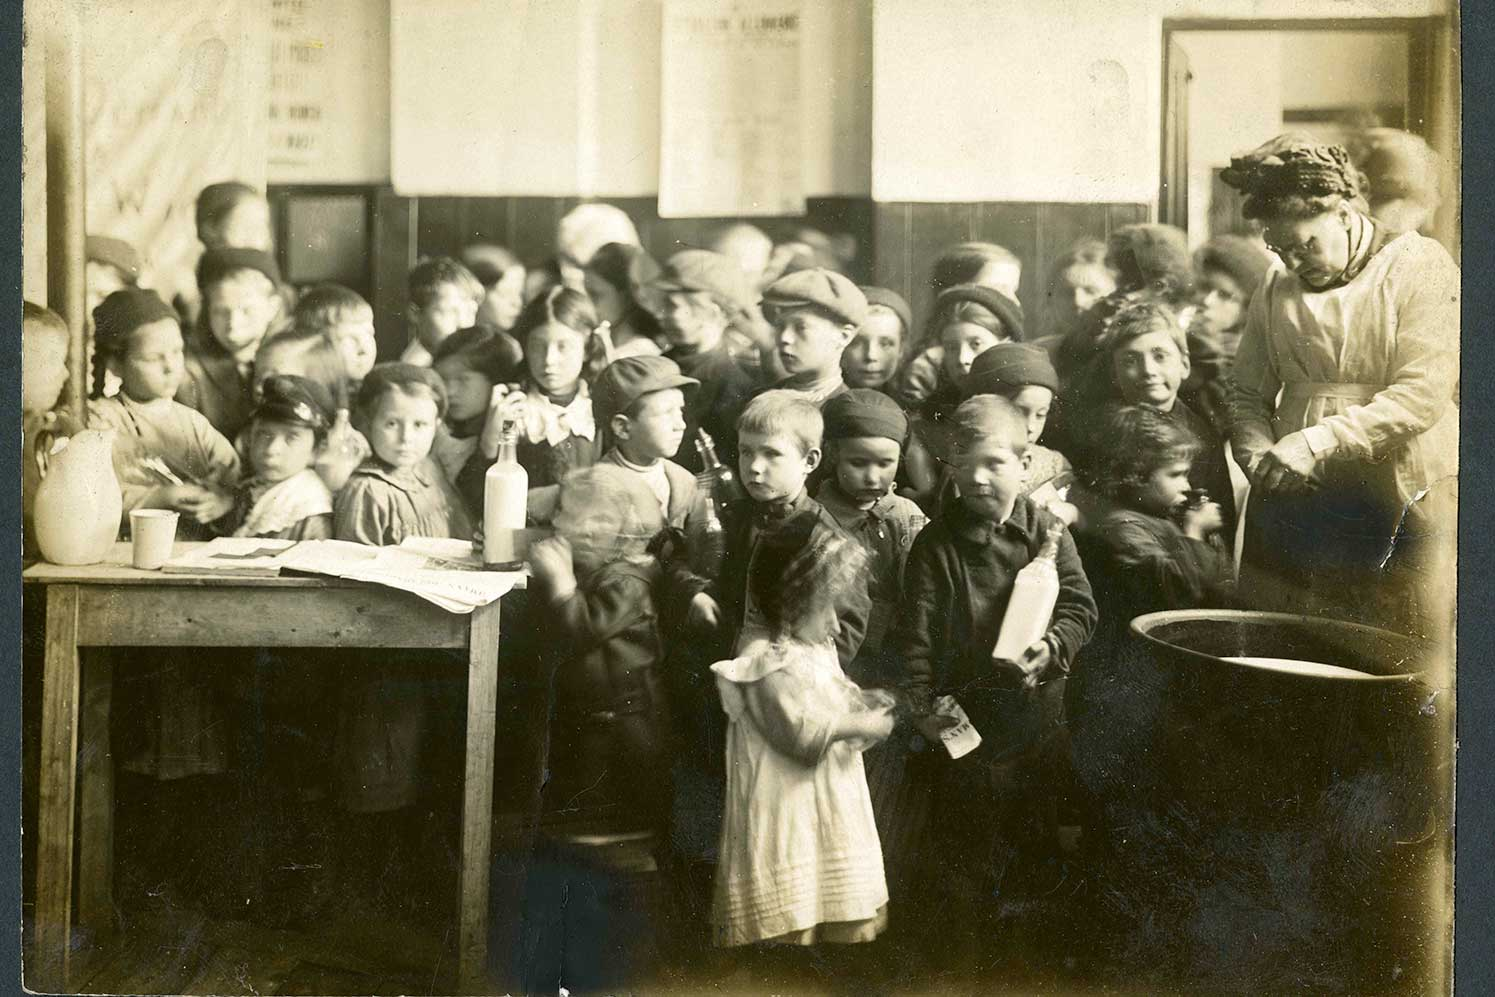 black and white image showing school children